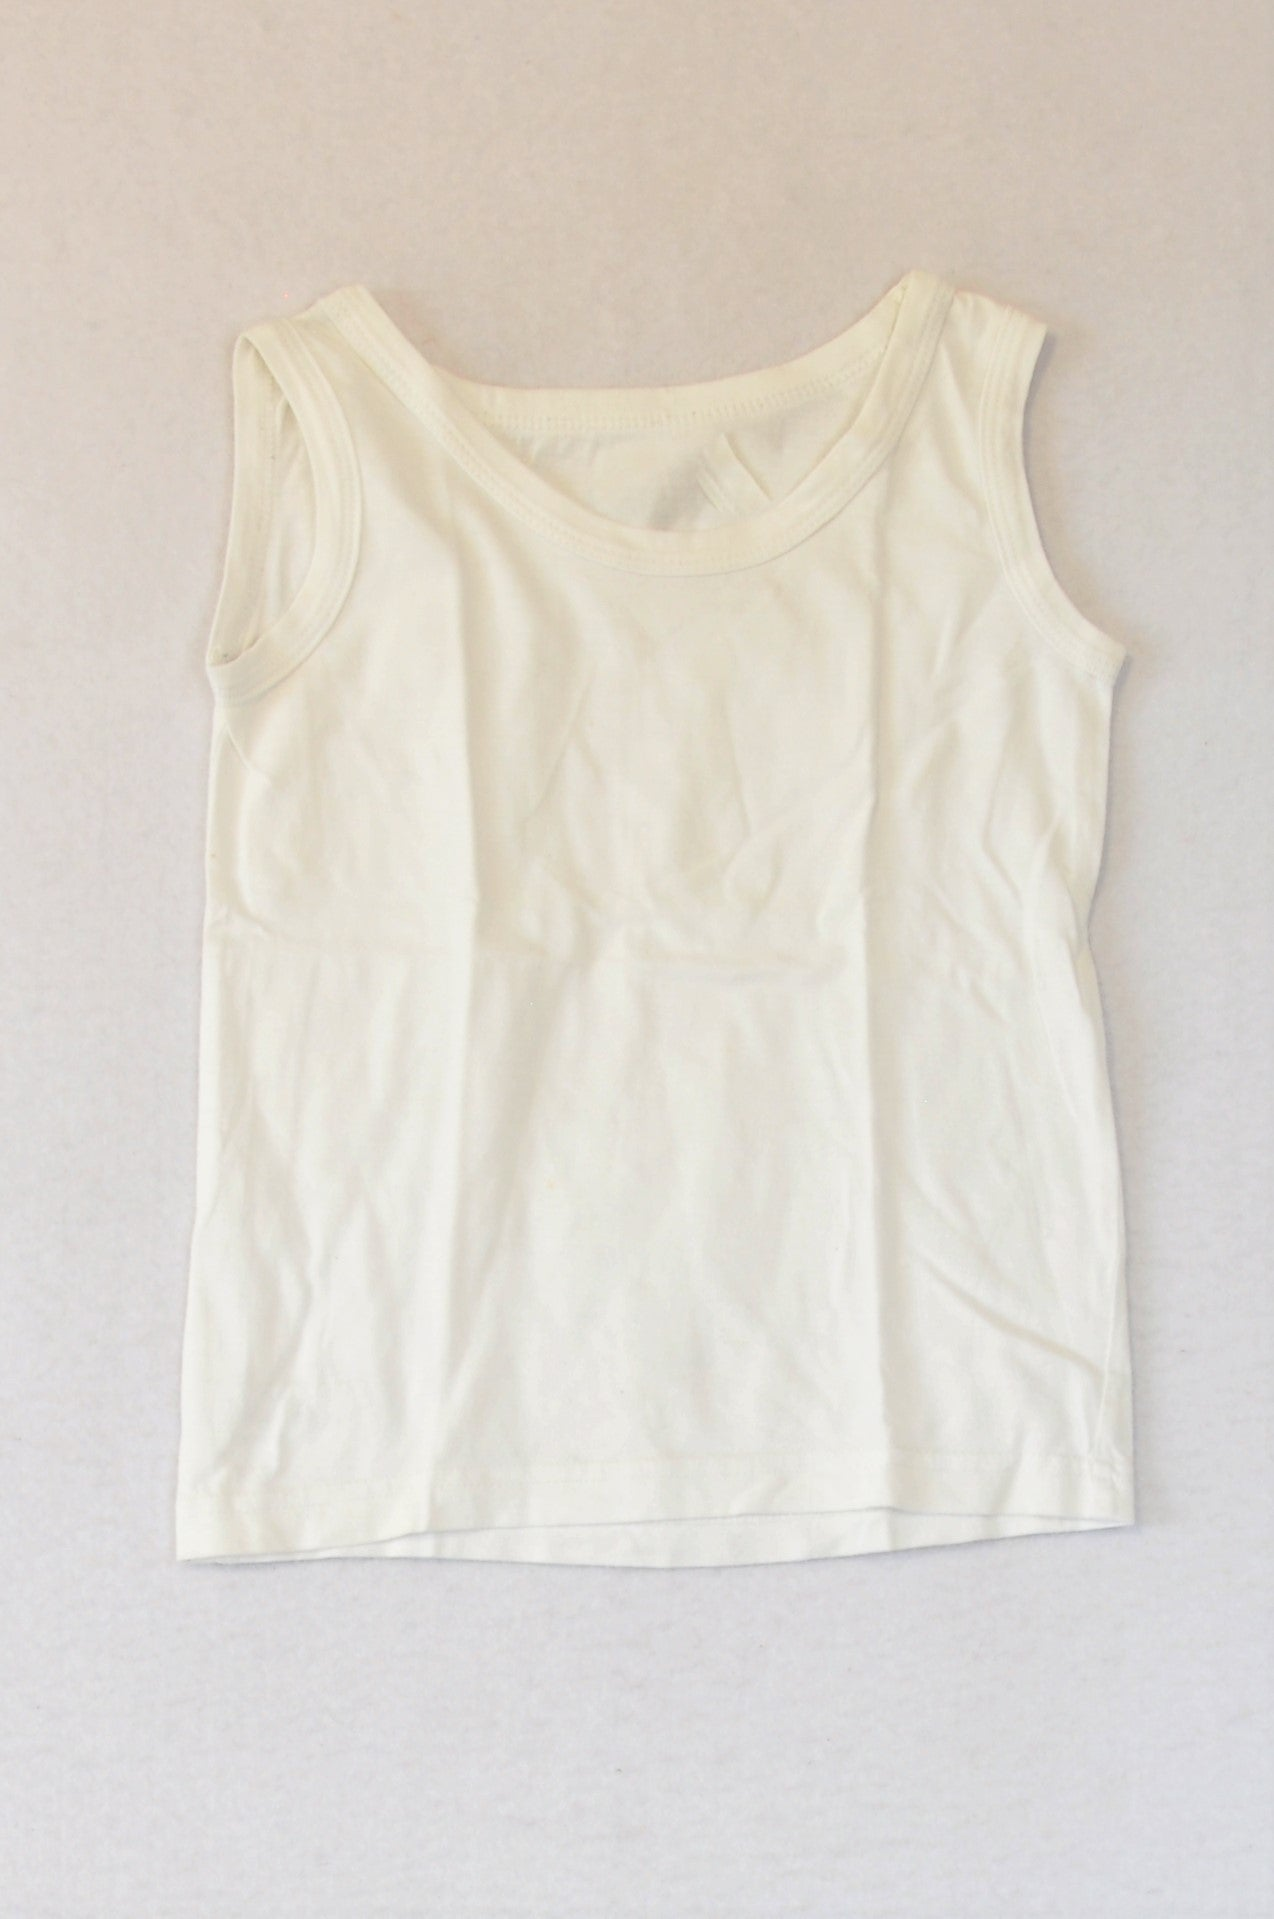 Woolworths White Basic Tank Top Unisex 4-5 years